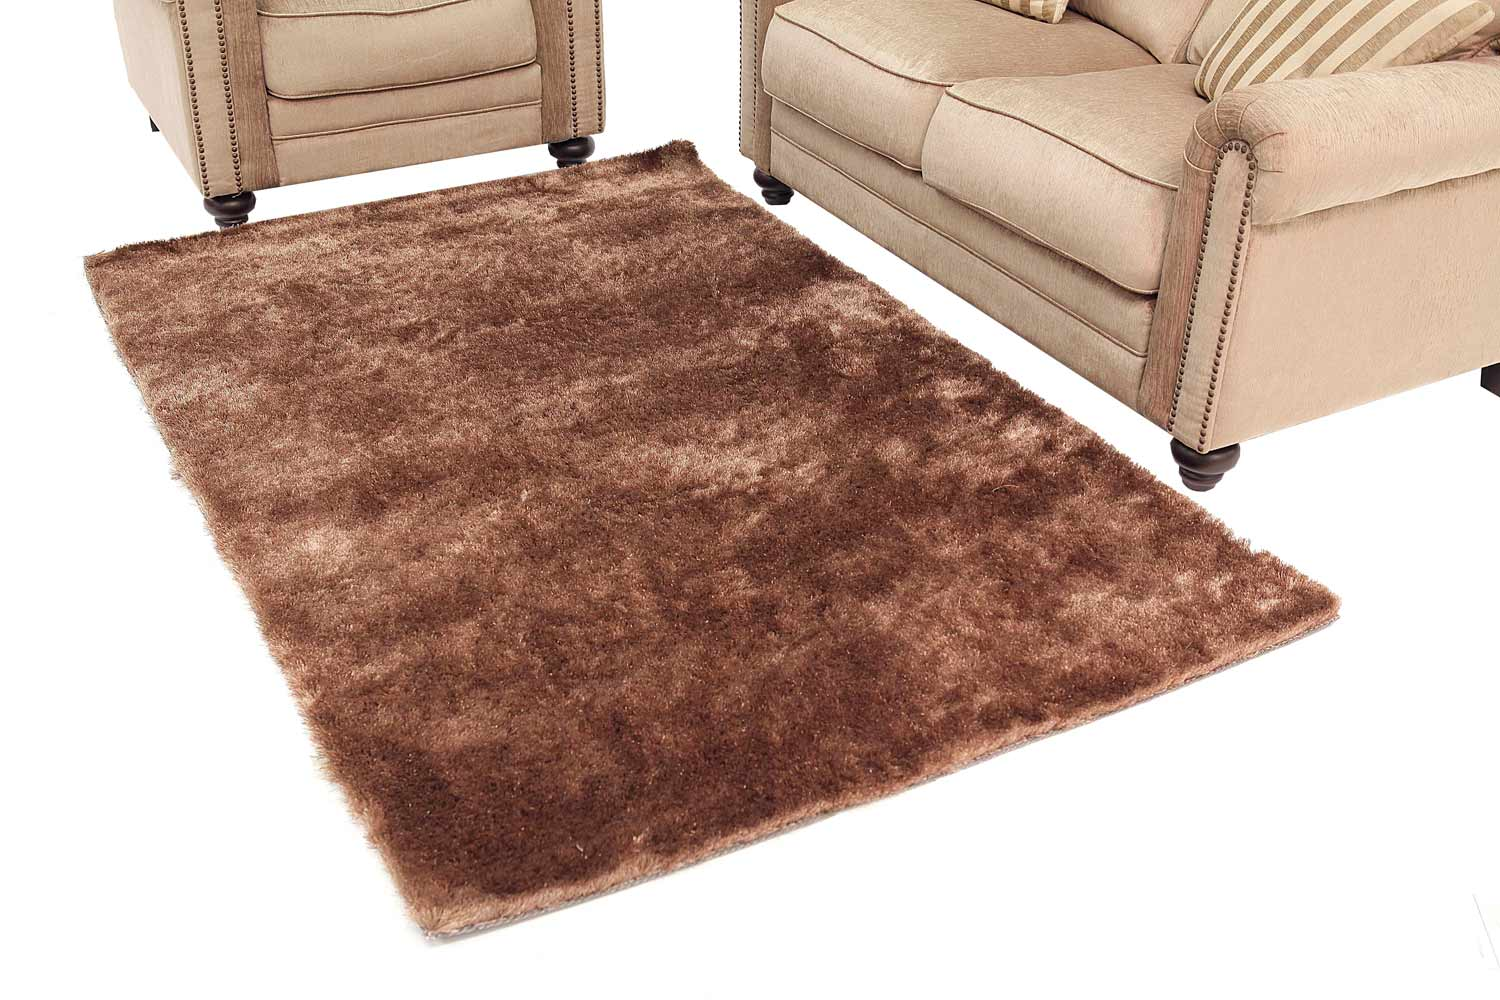 Abbyson Living AR-YS-TS008 Shag Rug 8 x 10-Feet - Brown